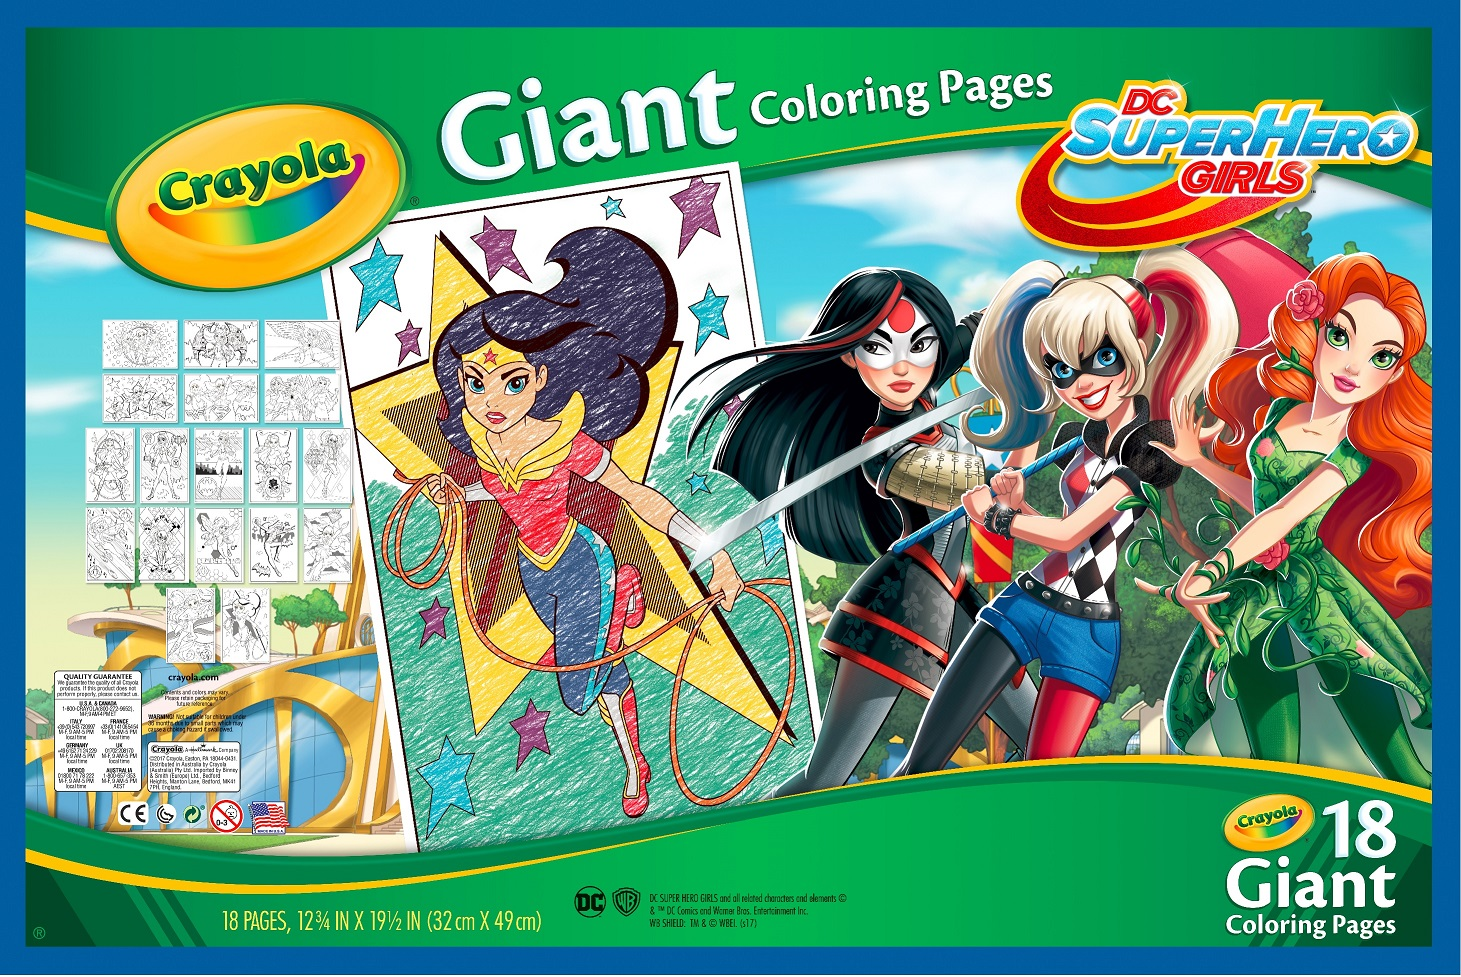 Crayola Giant Coloring Pages Featuring Dc Girl Superheroes 18 Count Walmart Com Walmart Com